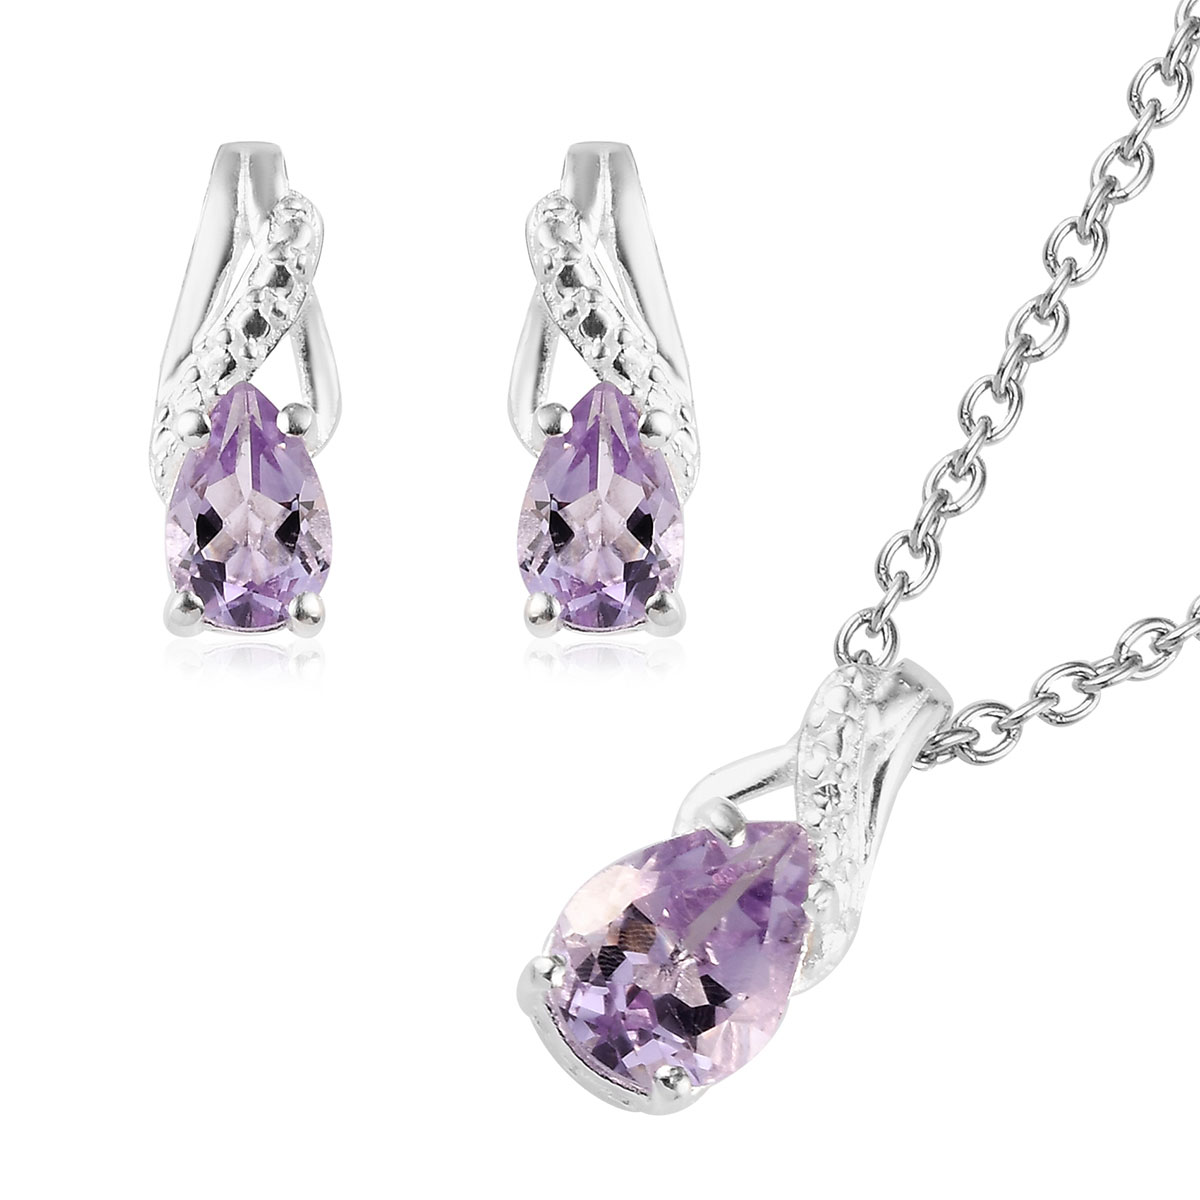 925 Sterling Silver Dangle Drop Earrings Chain Pendant Necklace Jewelry set For